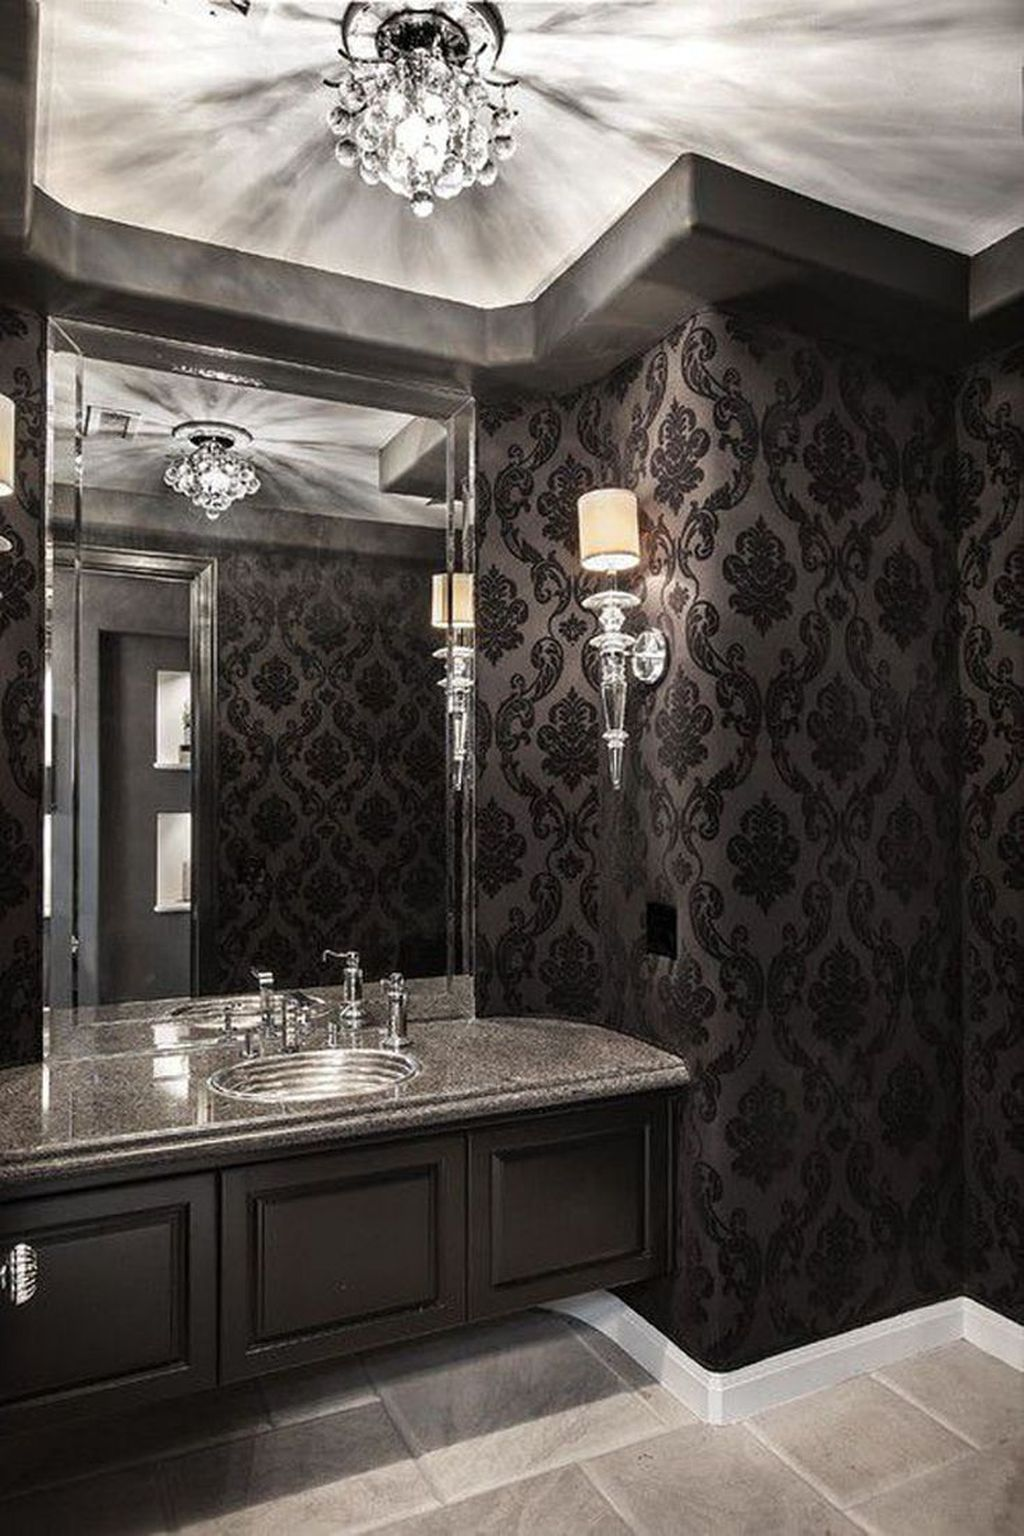 Inspiring Black Powder Room Design Ideas With Modern Style 18